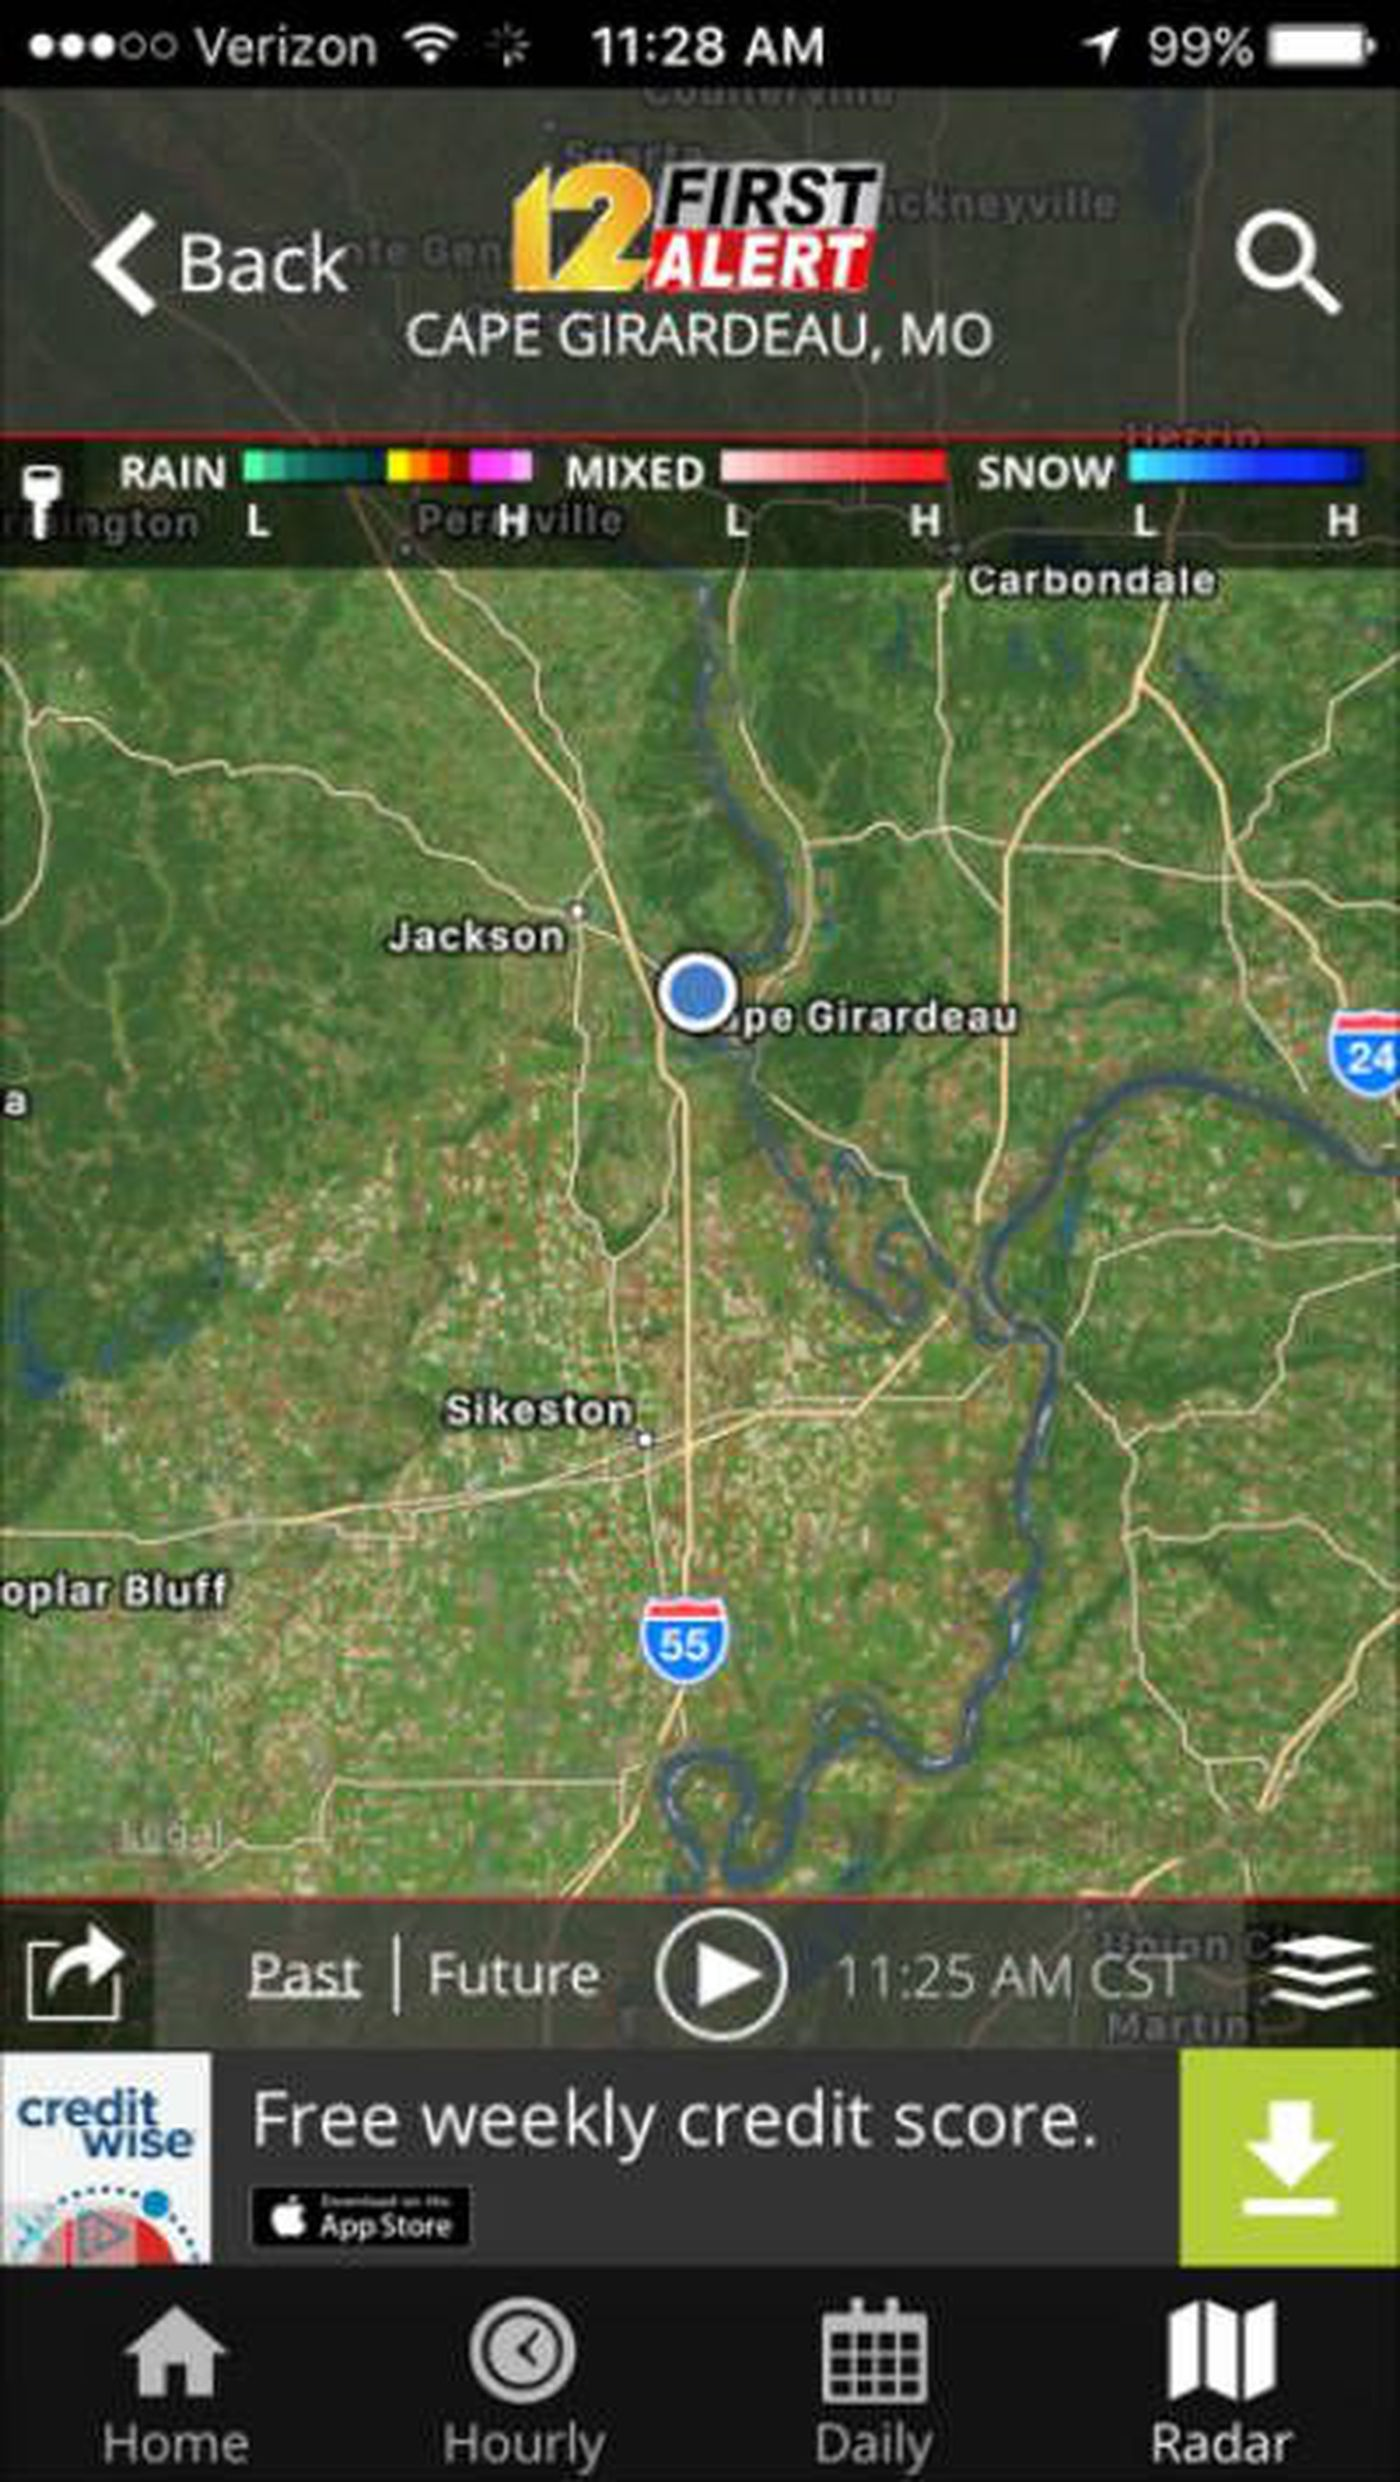 KFVS news and First Alert Weather apps